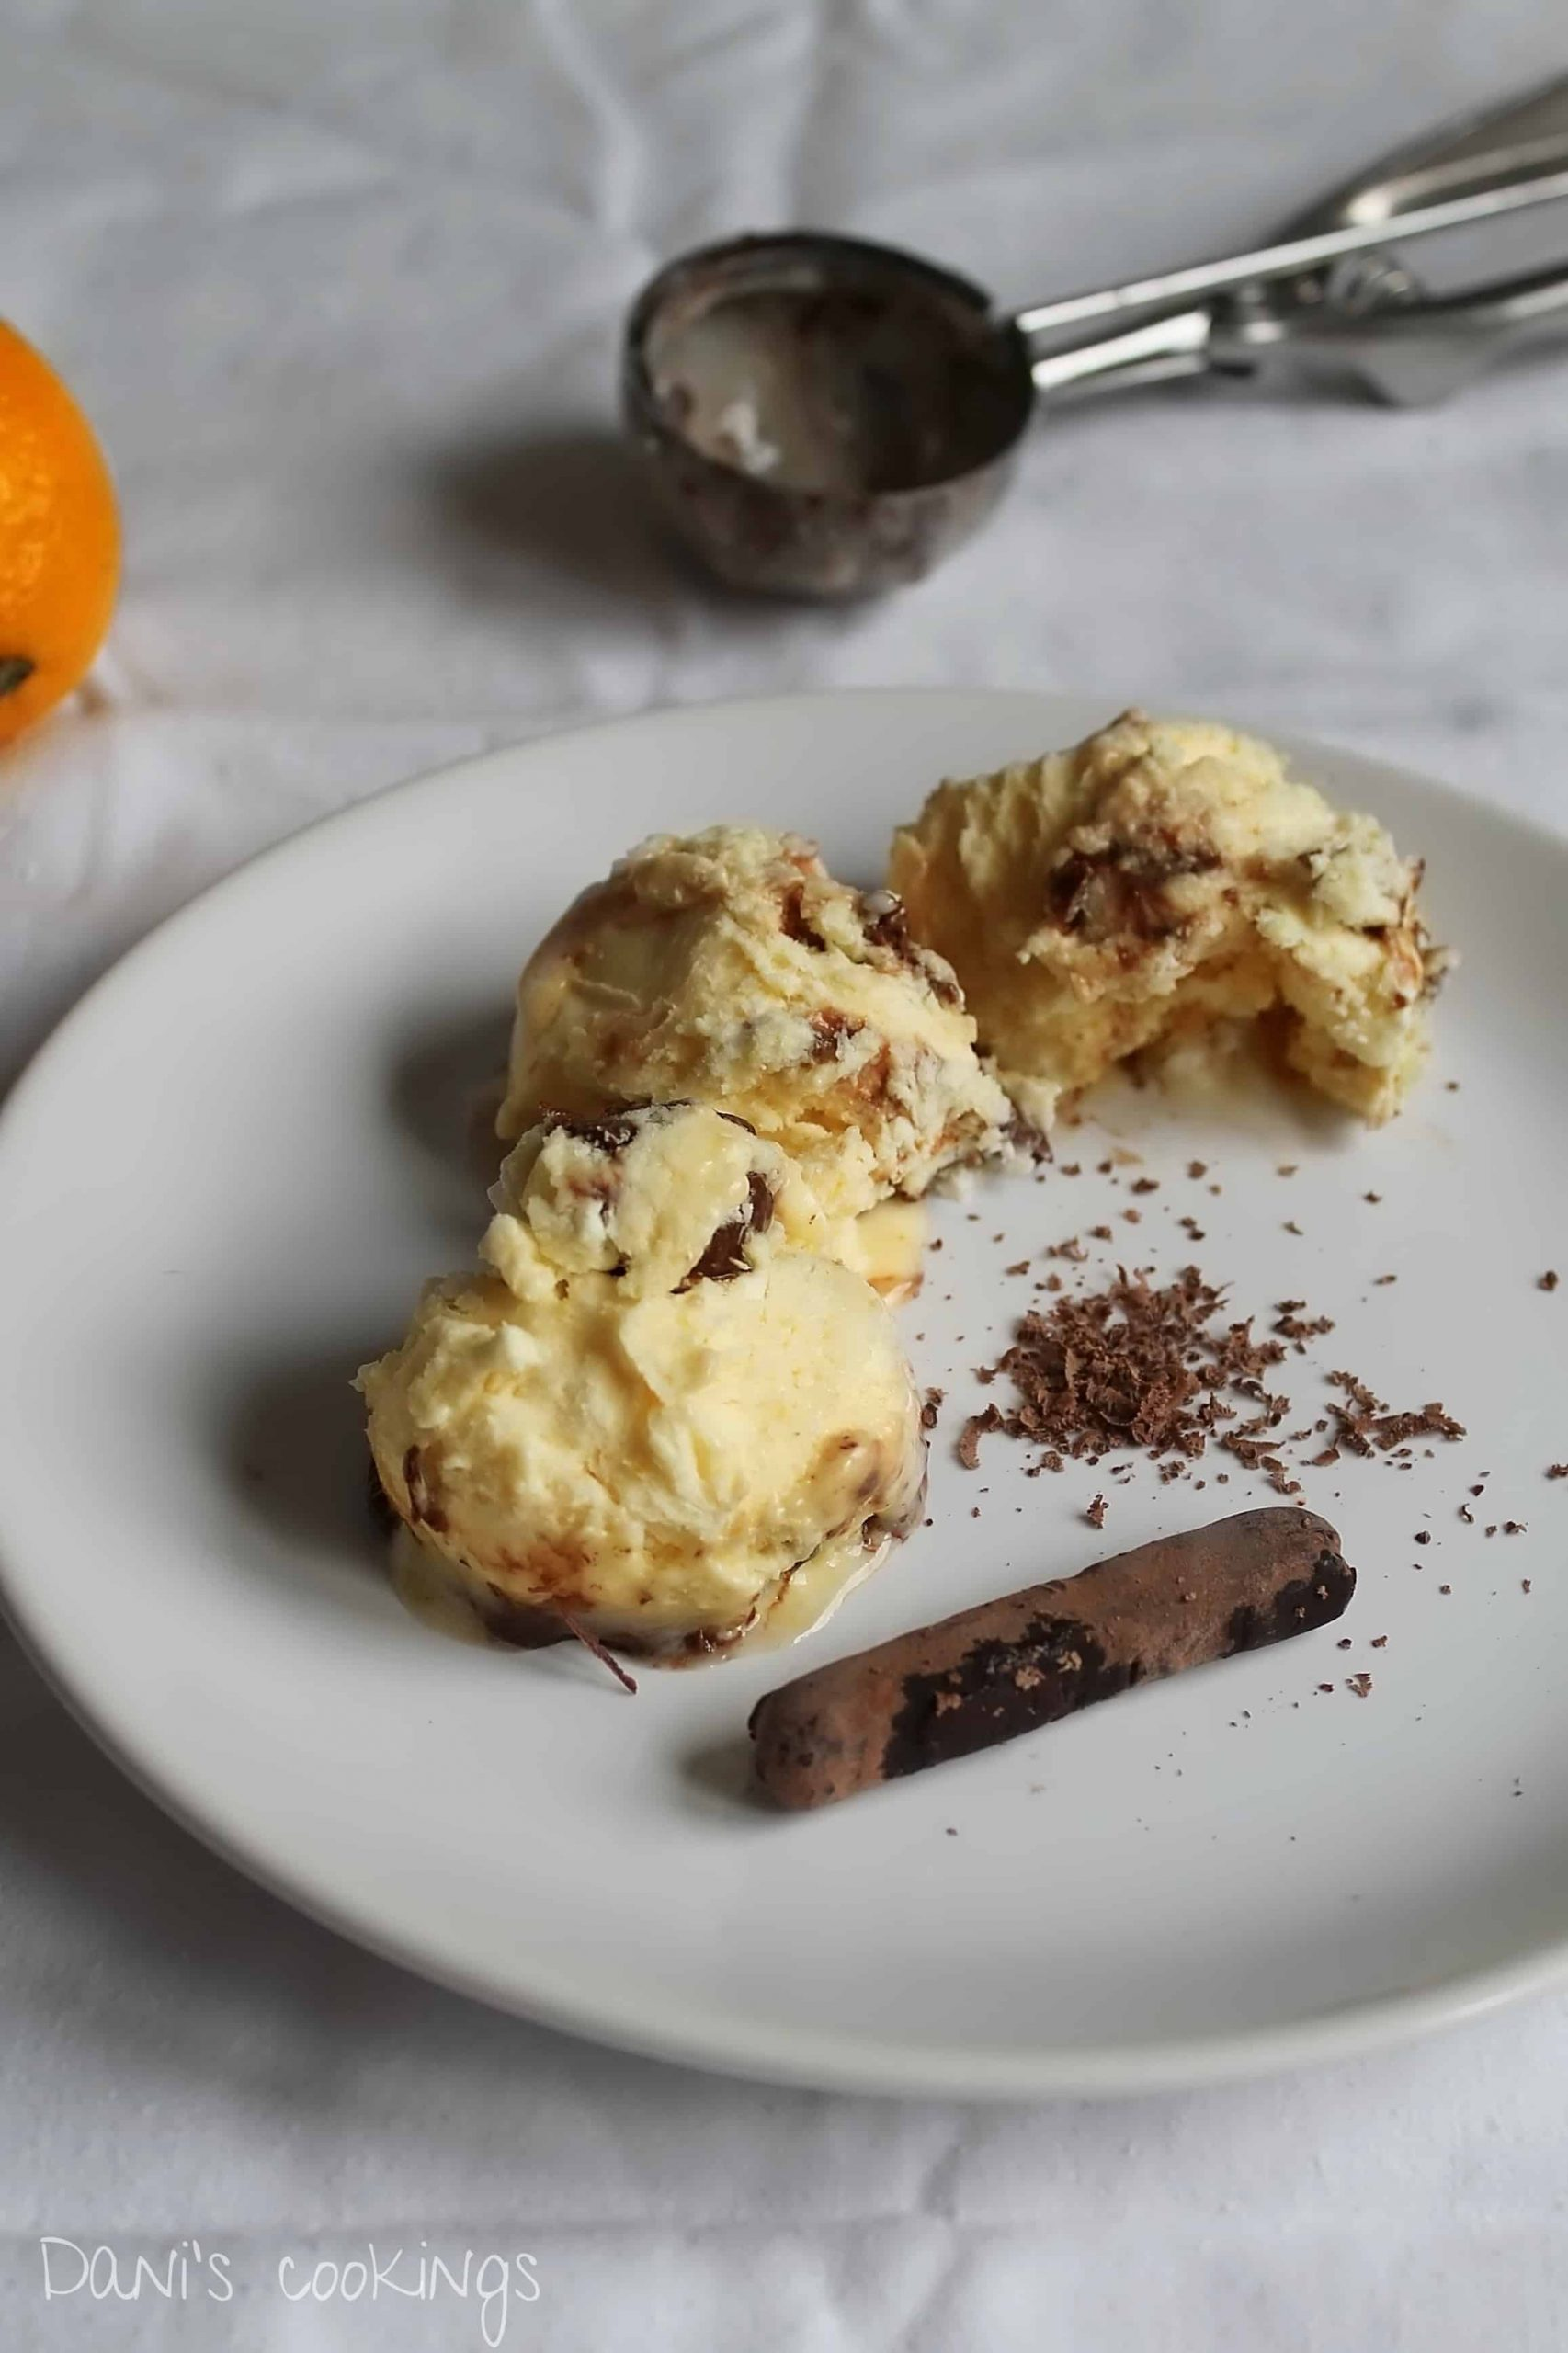 three scoops of semifreddo on a plate with an ice cream spoon and lemon aside